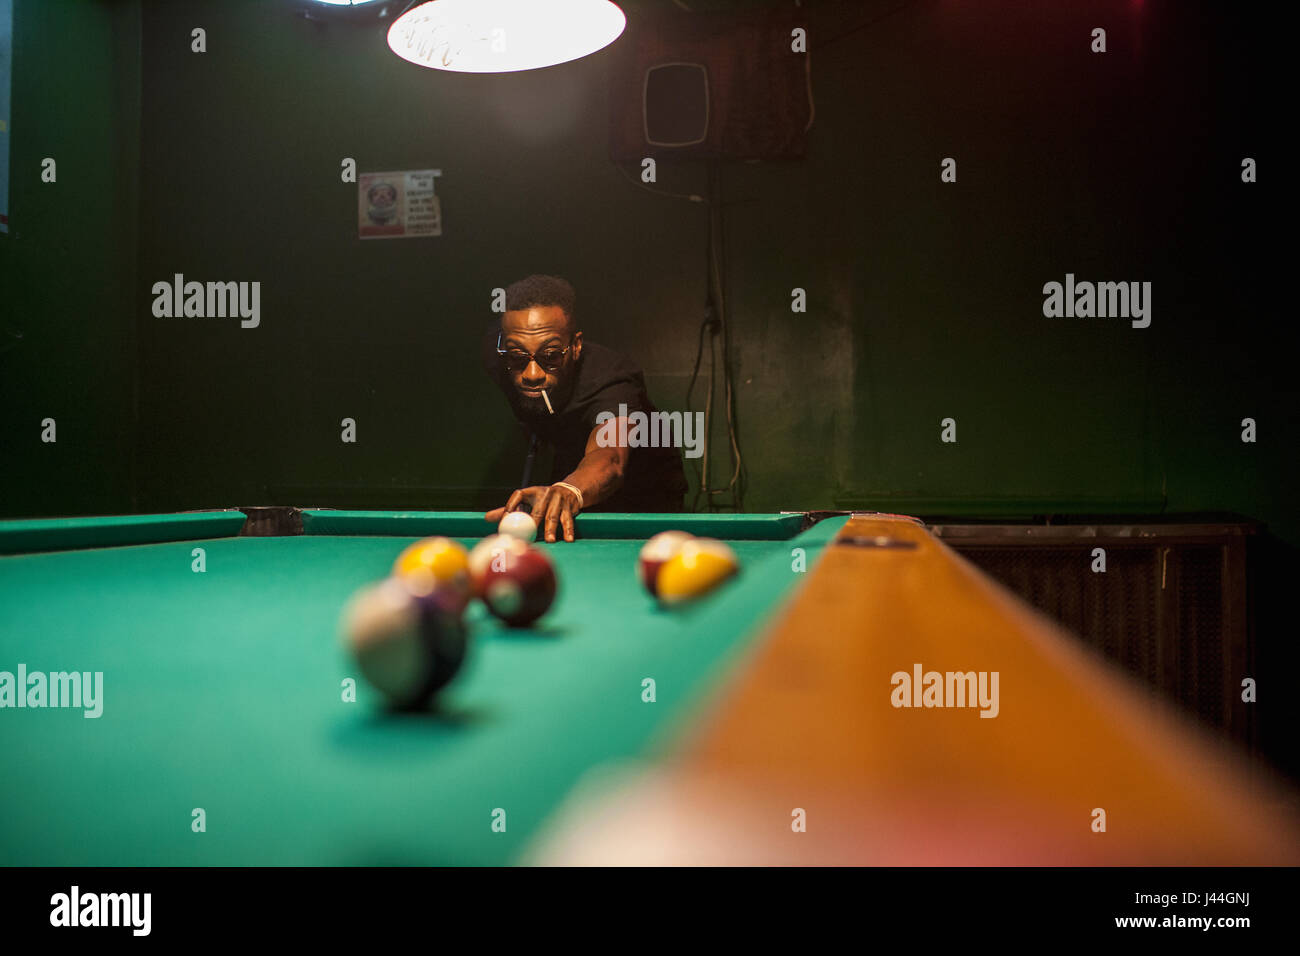 A young man playing pool. - Stock Image